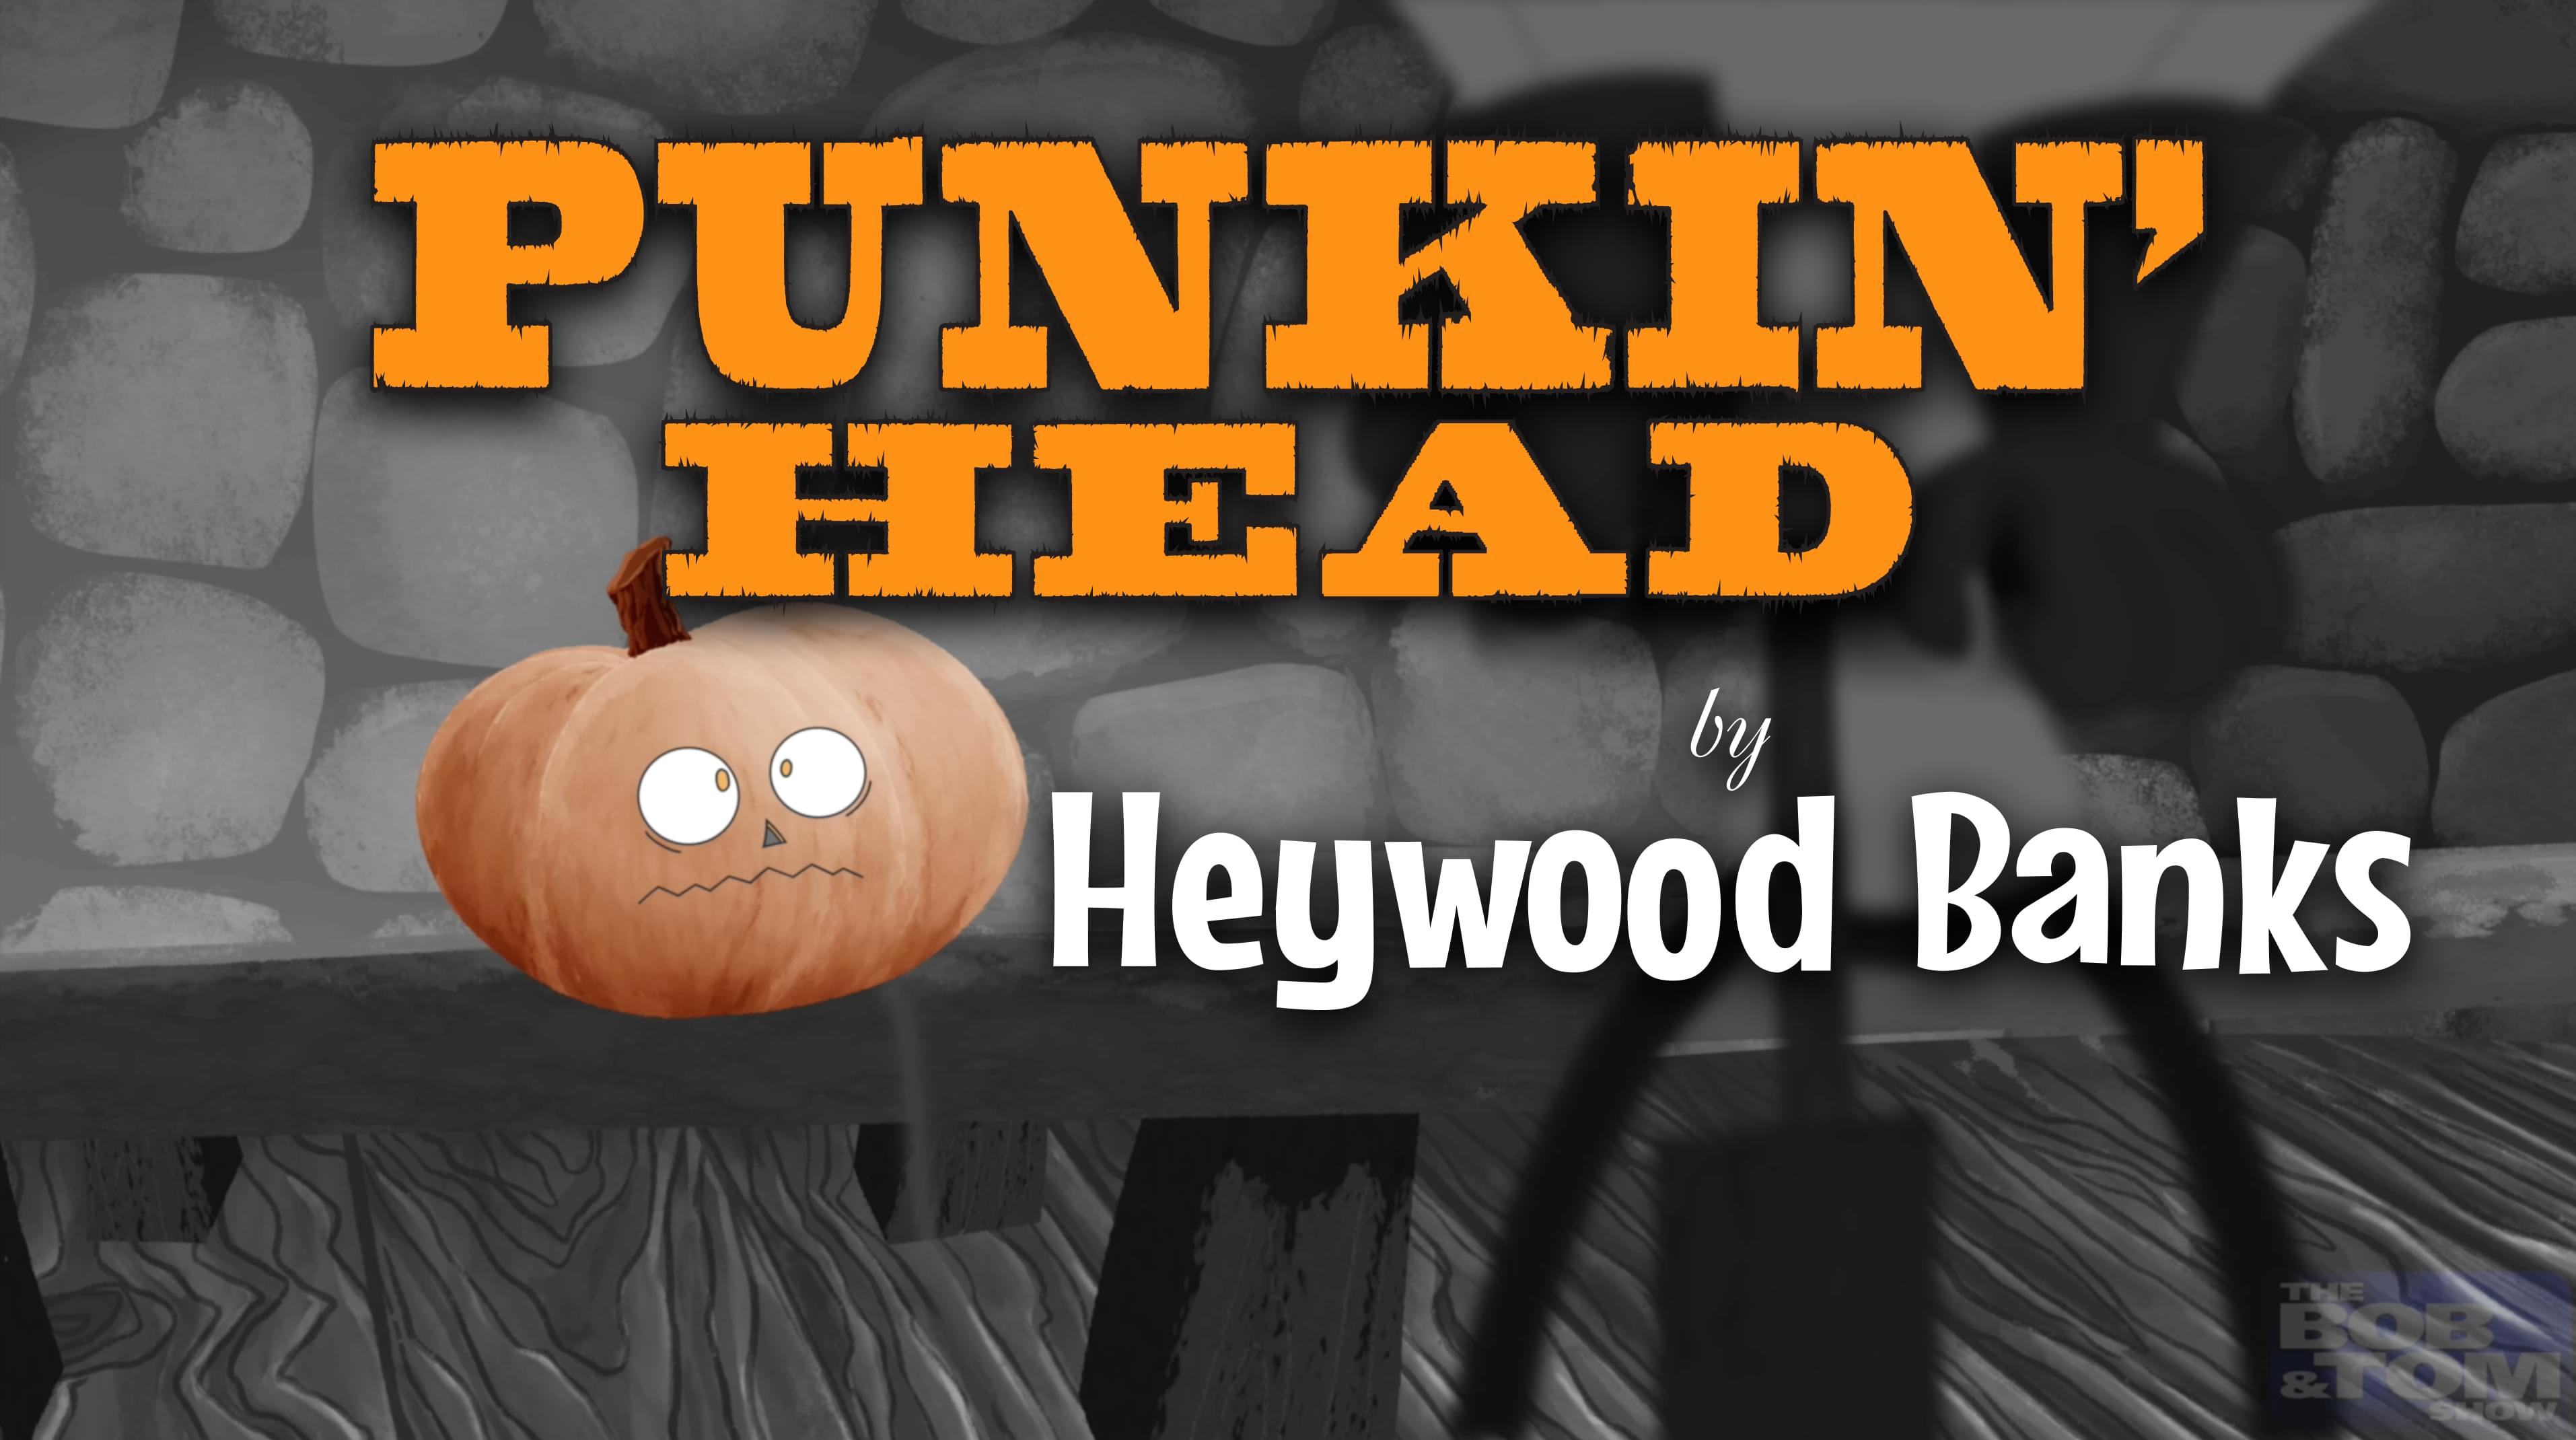 Punkin' Head by Heywood Banks